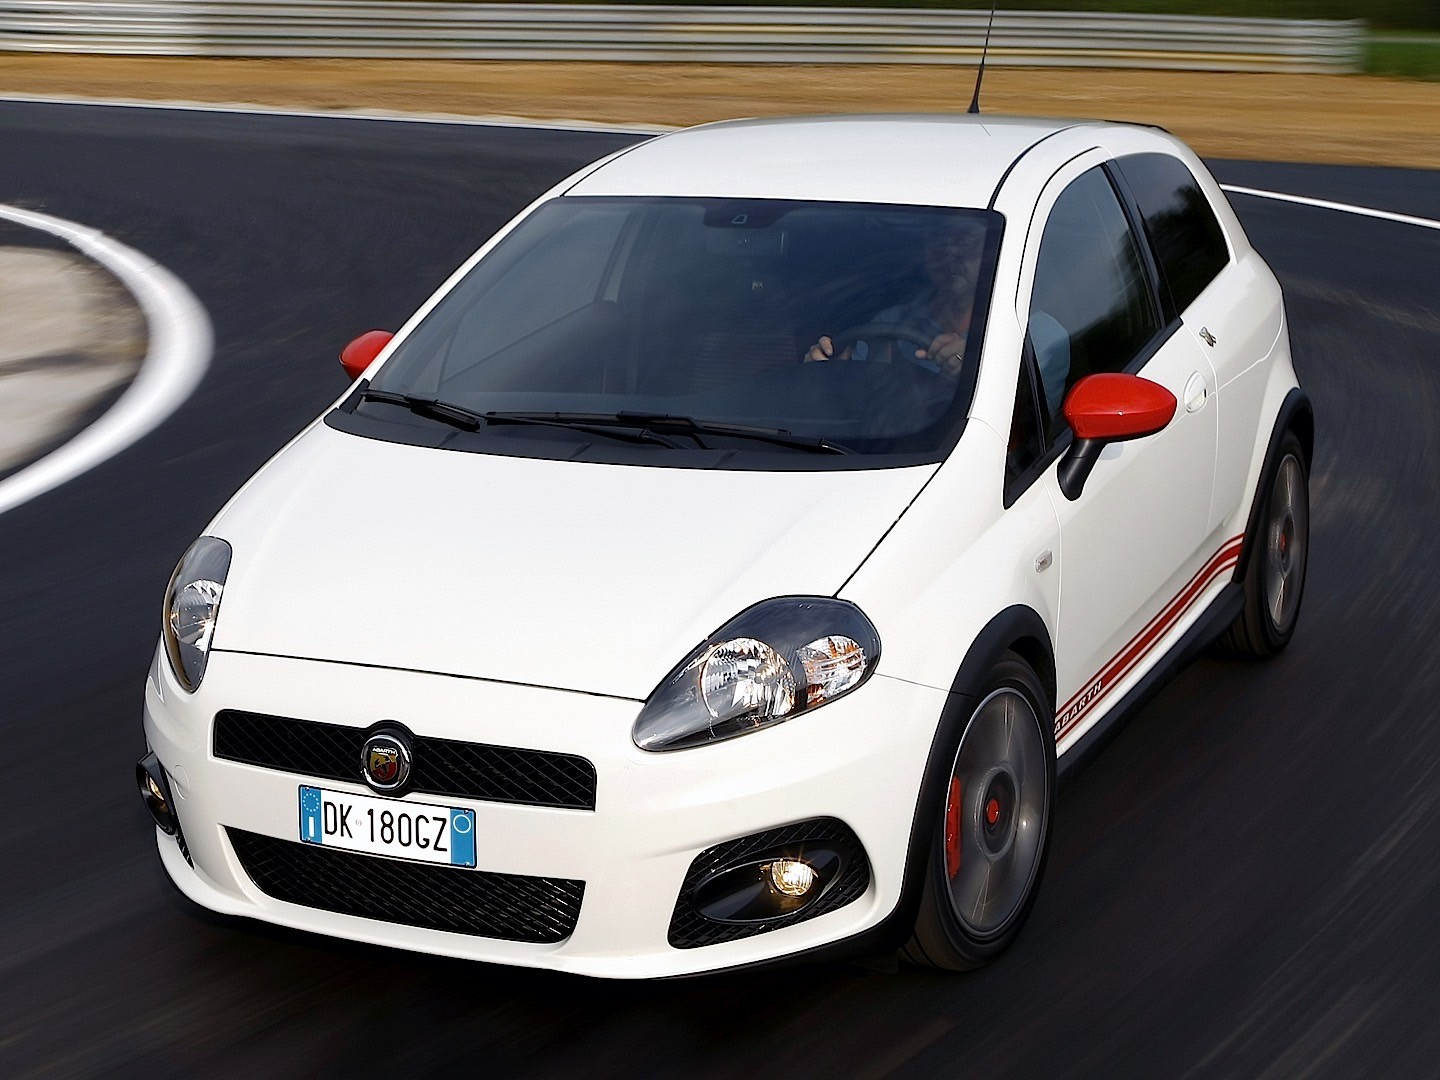 The return of the unmistakable abarth roadster, born in collaboration with the racing team experience. FIAT Grande Punto Abarth specs & photos - 2007, 2008, 2009